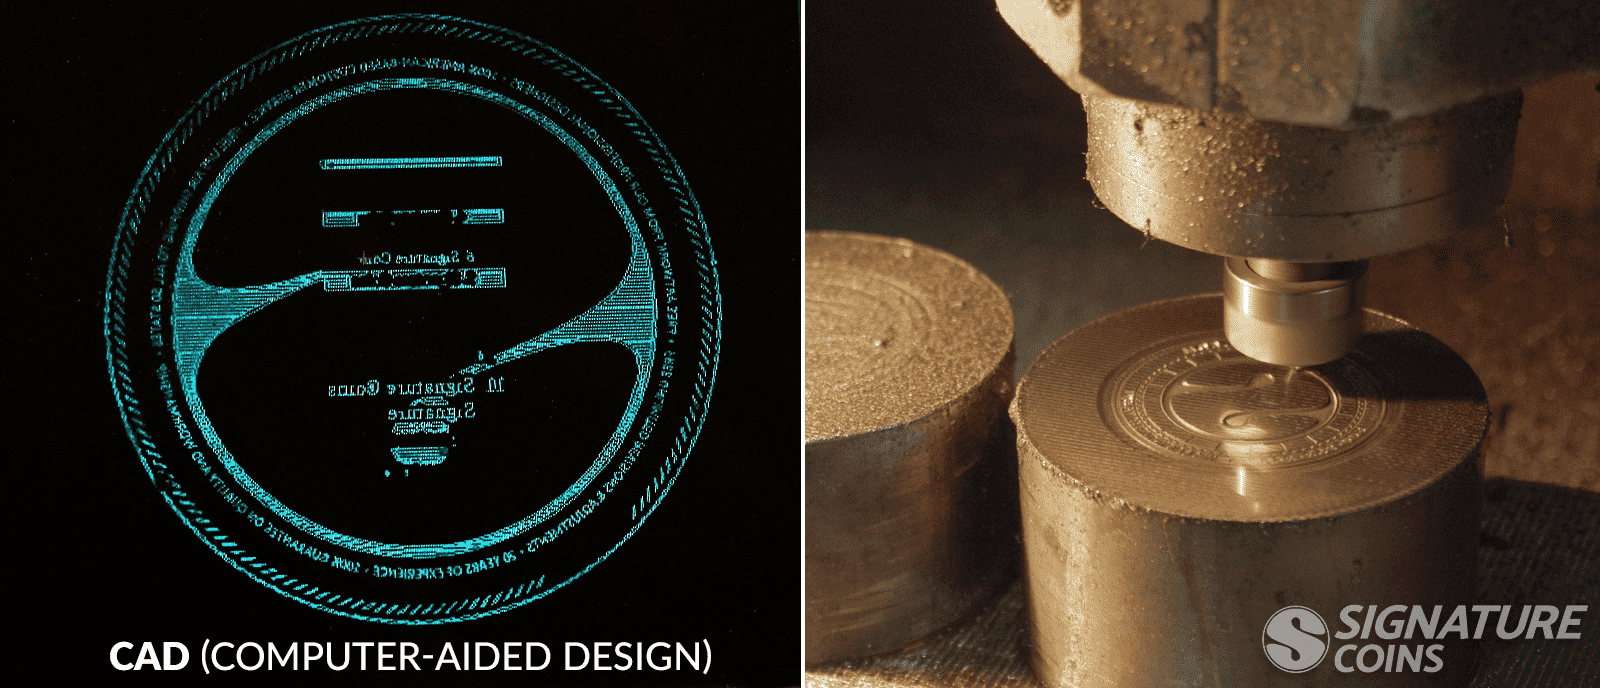 Cad and mold